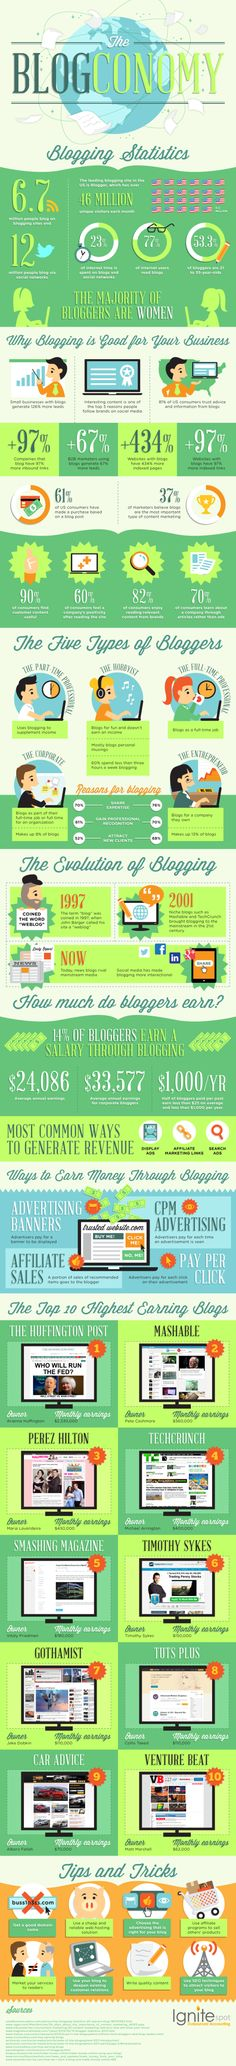 The Blogconomy: #Blogging #Statistics #Infographic